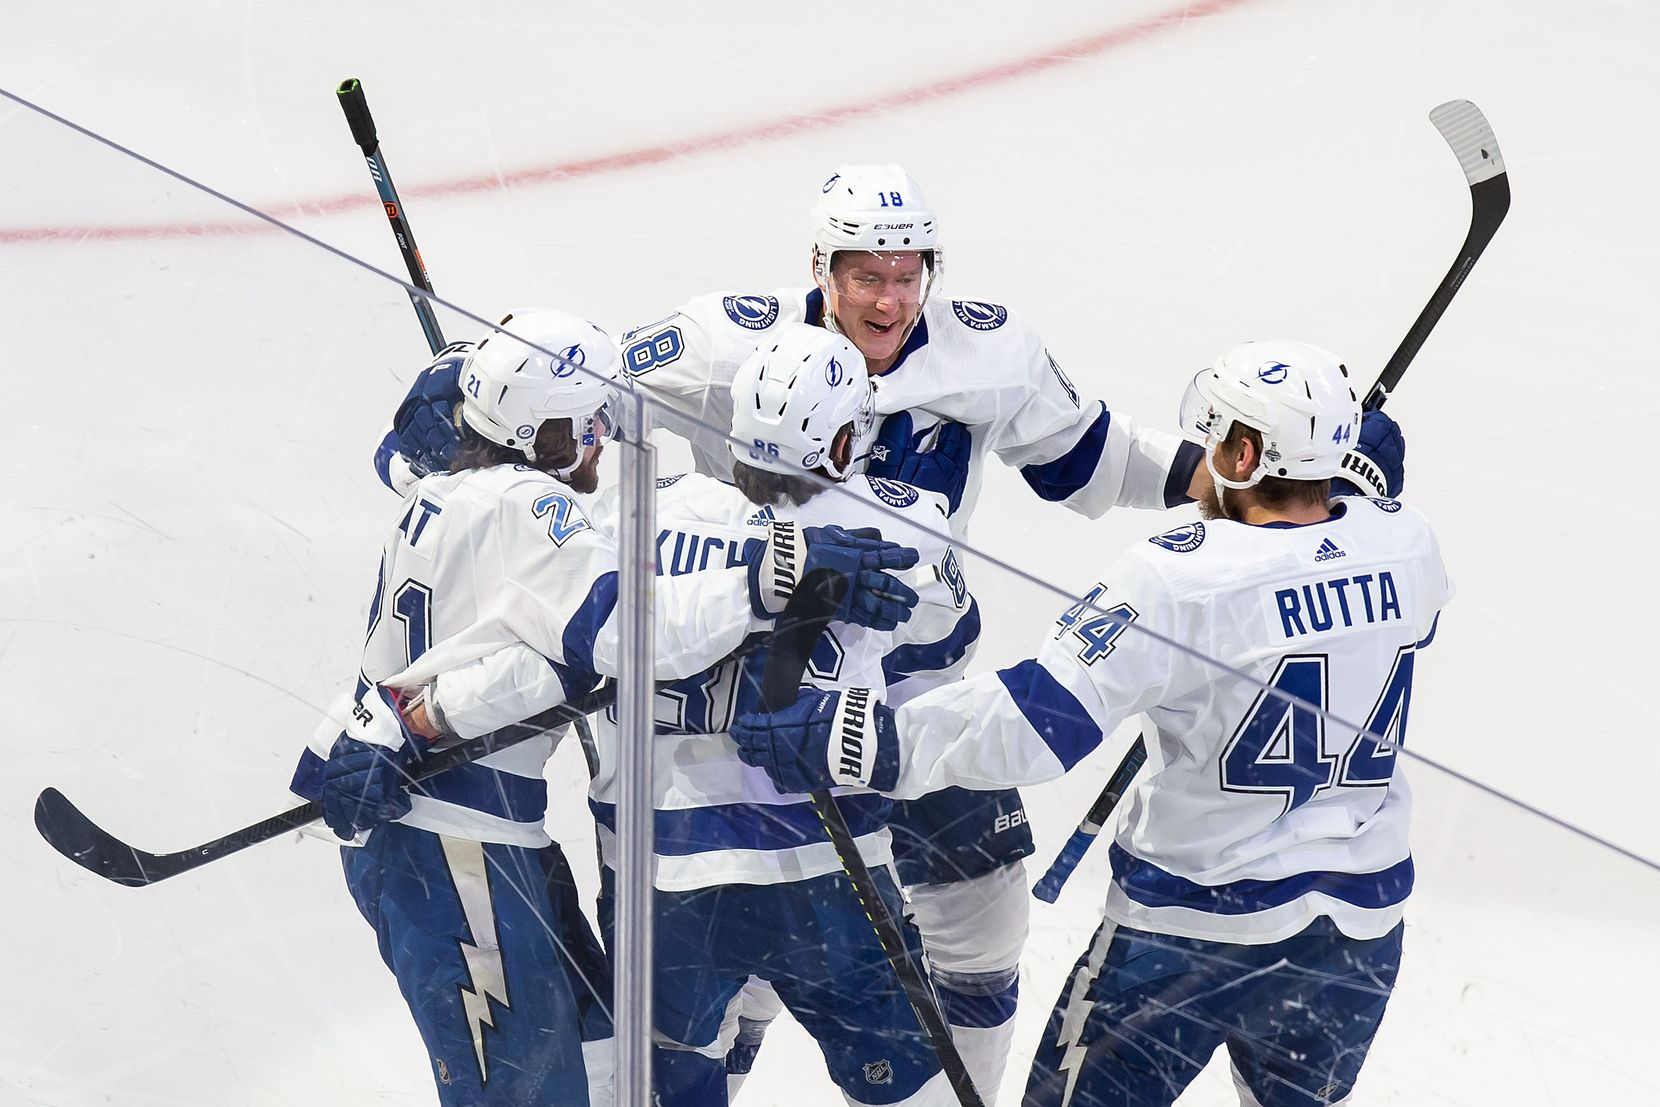 Brayden Point (21), Nikita Kucherov (86), Ondrej Palat (18), and Jan Rutta (44) of the Tampa Bay Lightning celebrate Kucherov's goal against the Dallas Stars during Game Three of the Stanley Cup Final at Rogers Place in Edmonton, Alberta, Canada on Wednesday, September 23, 2020. (Codie McLachlan/Special Contributor)